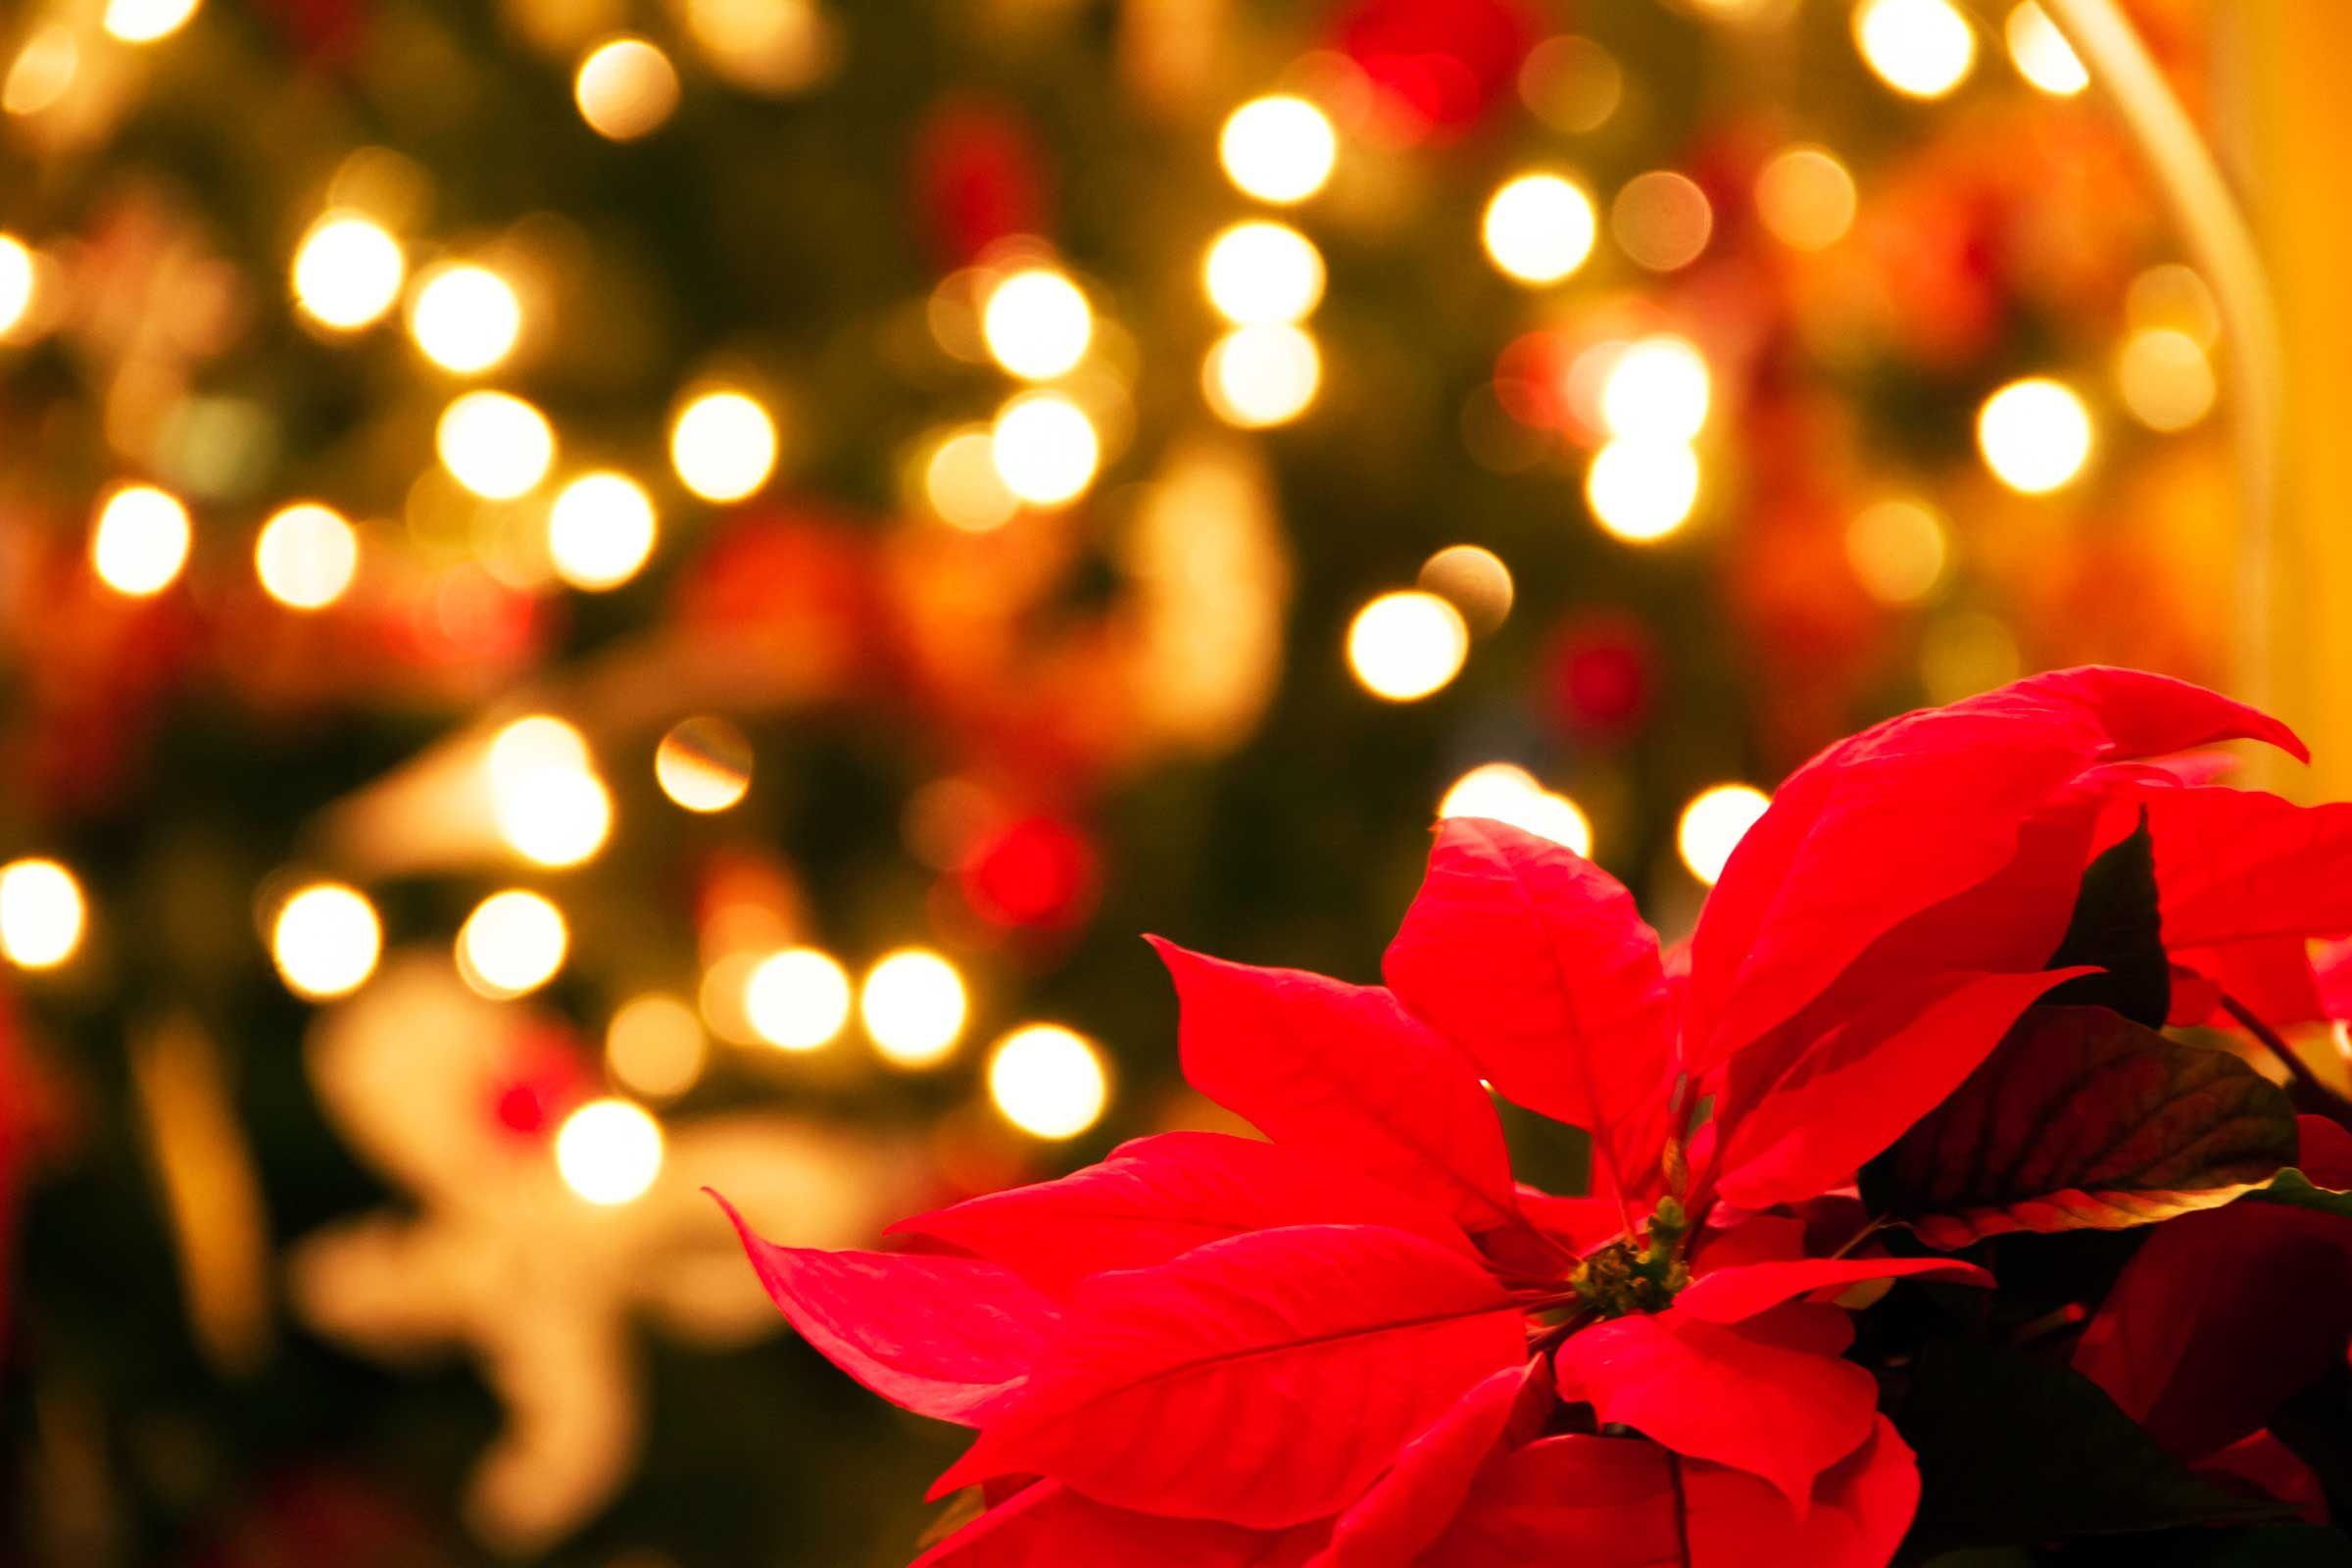 Why Poinsettias Are the Official Christmas Flower | Reader's Digest